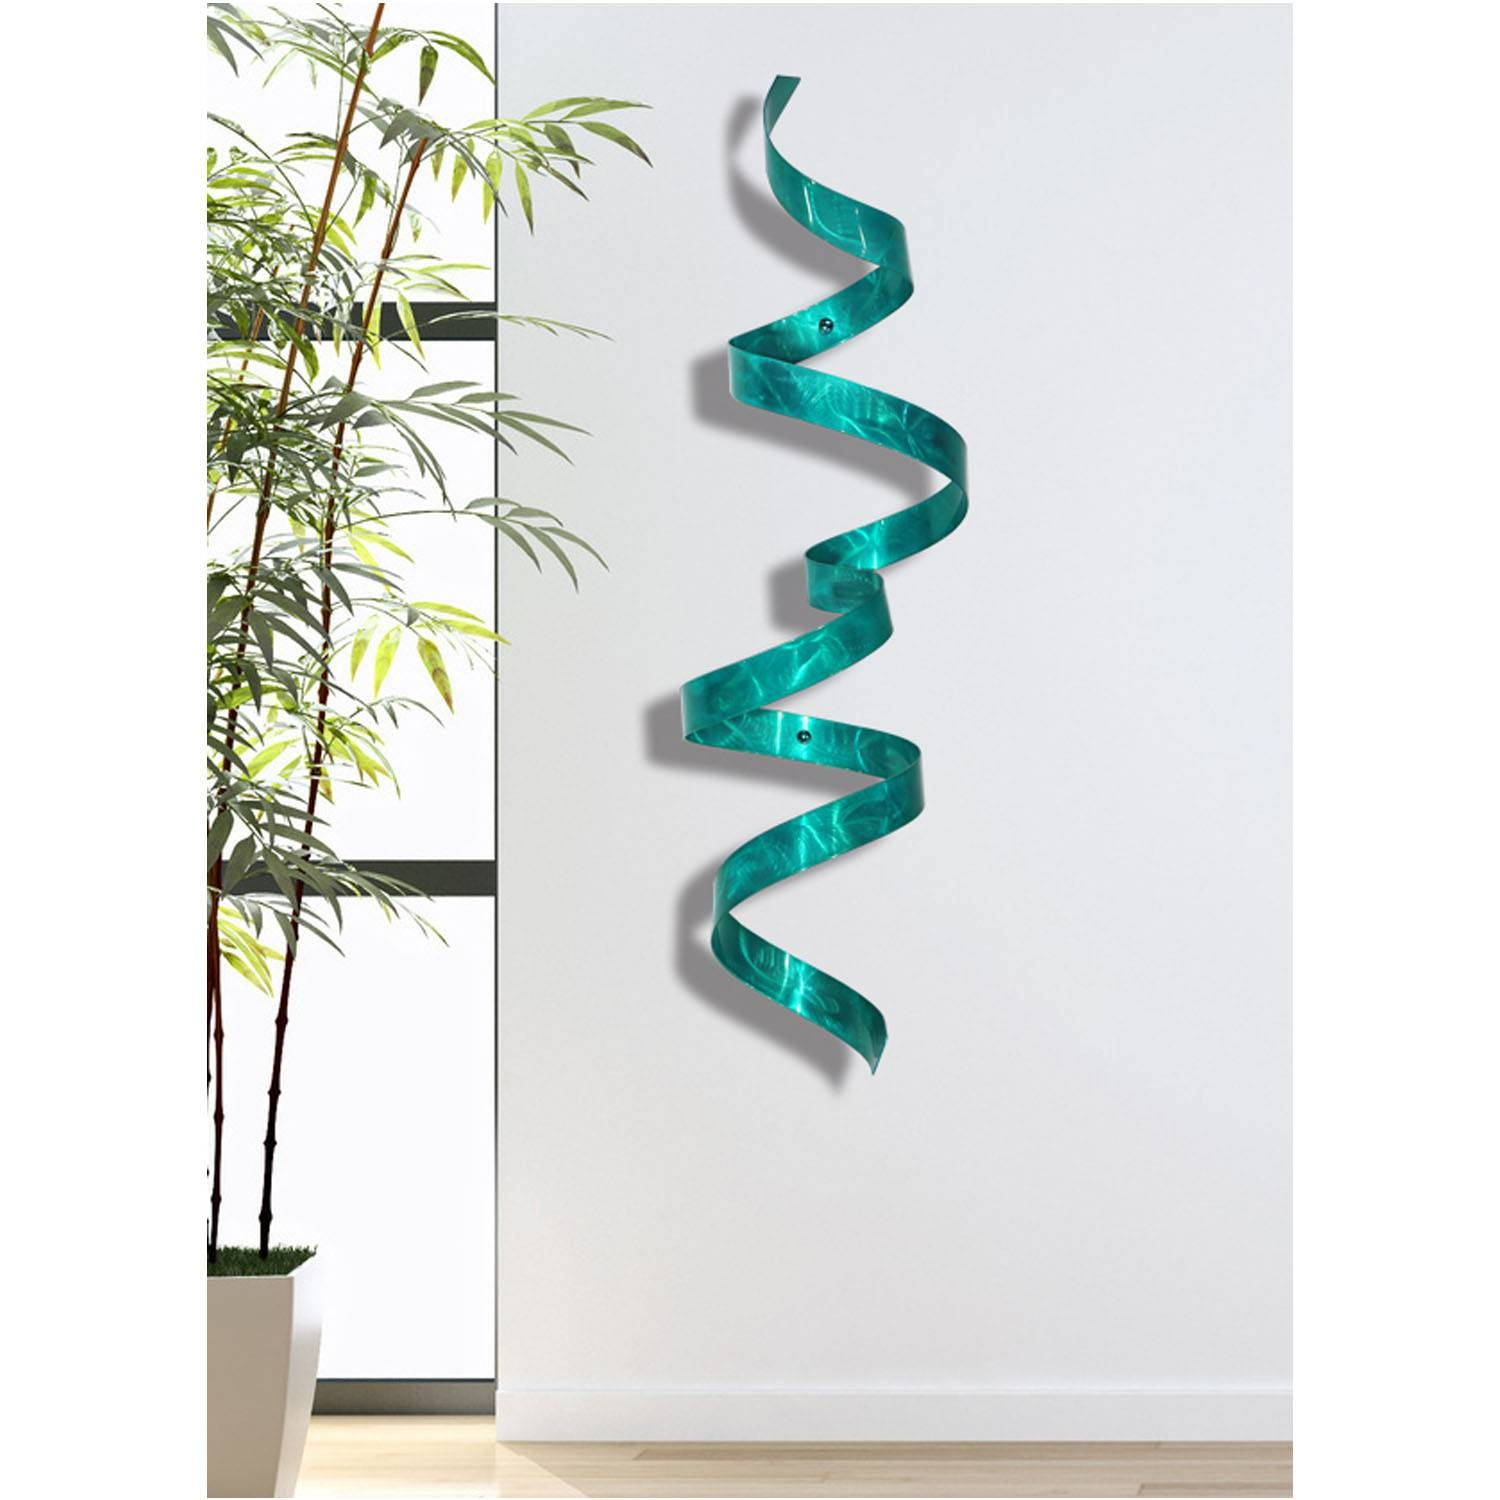 Teal Wall Twist – Blue 3D Abstract Twist Metal Wall Art Sculpture Regarding Best And Newest Teal Metal Wall Art (View 18 of 20)